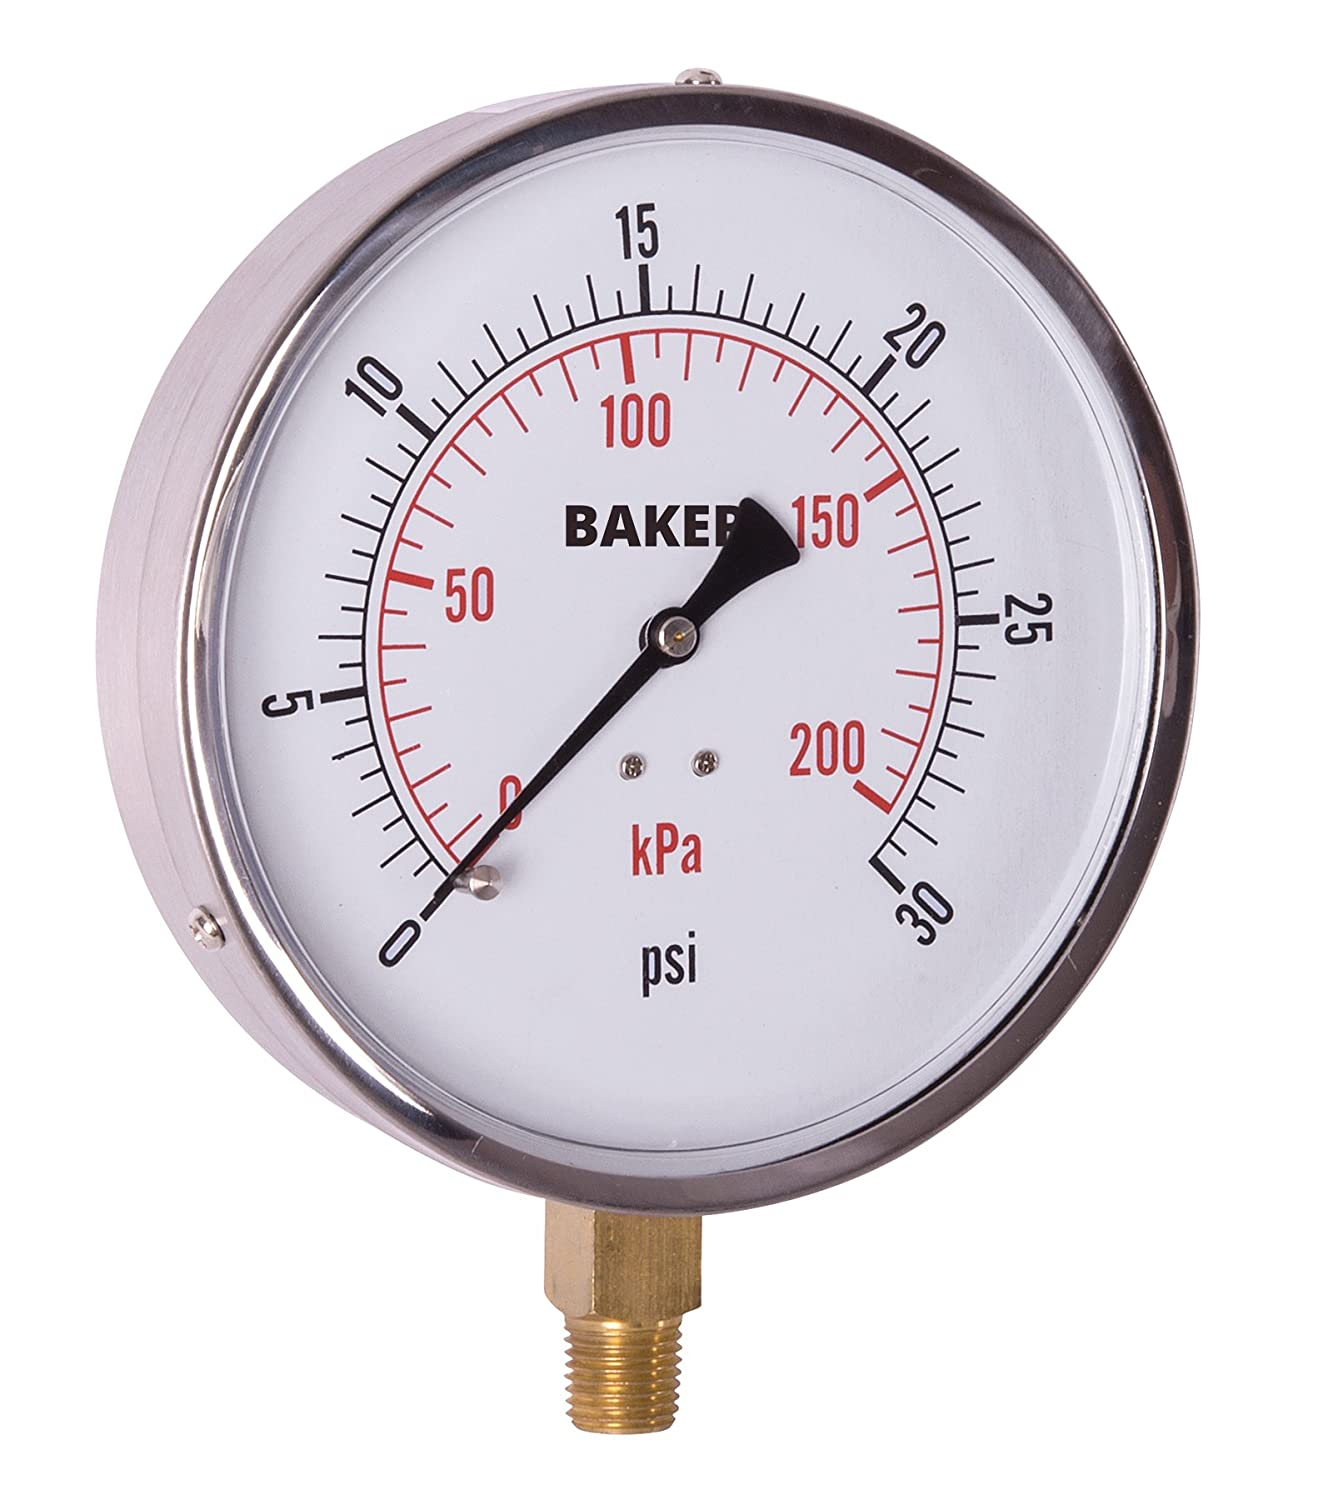 Baker Instruments AVND Series Stainless Steel Dual Scale Pressure Gauge 1//4 NPT Bottom Mount 4.5 Dial 1//4 NPT Bottom Mount Reed 421AVND-30 +//-1/% Accuracy 0 to 30 psi // kPa 4.5 Dial